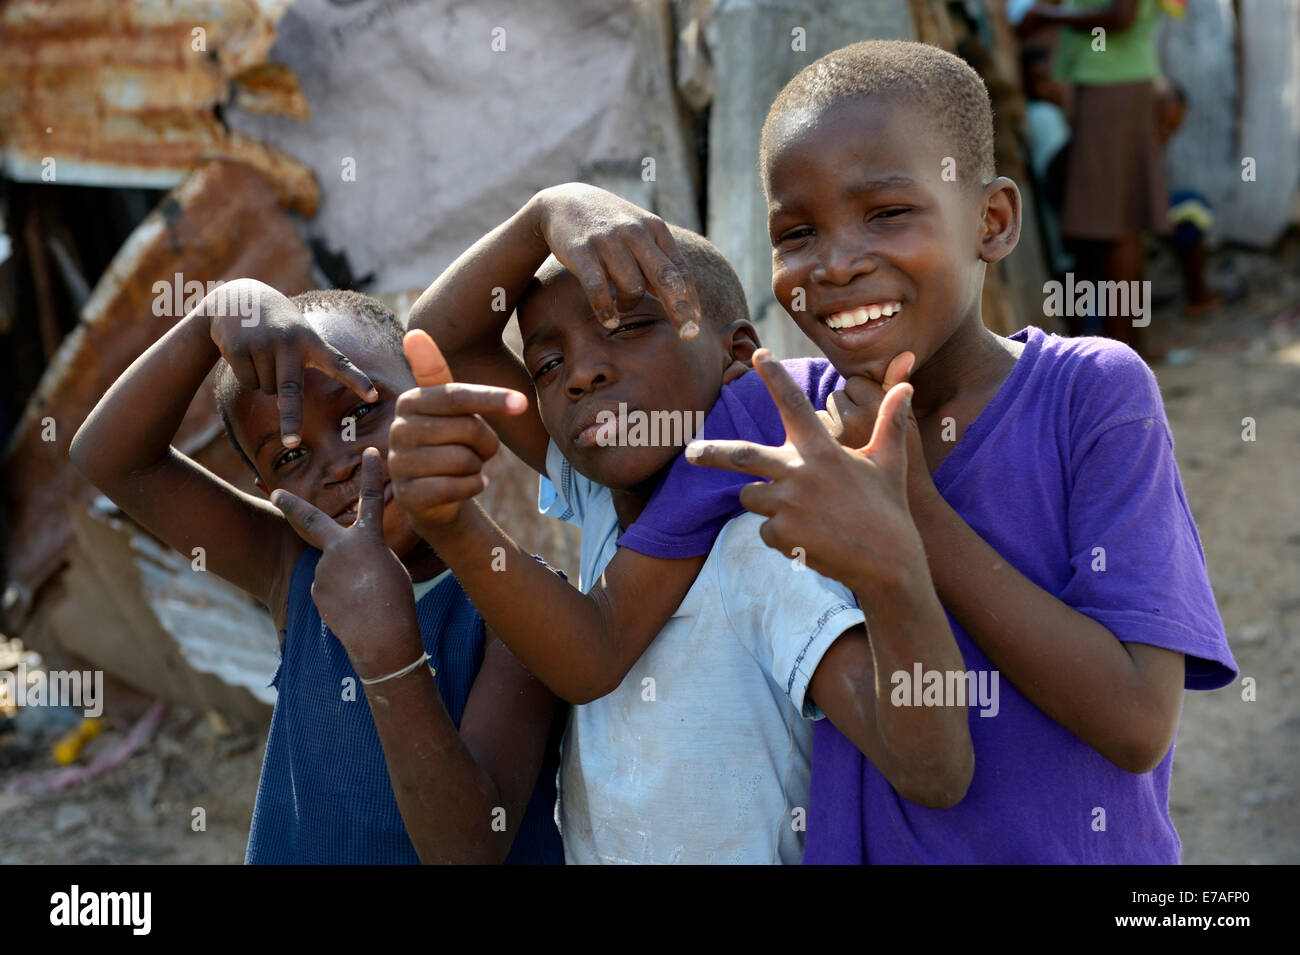 Three boys posing with wild gestures, Camp Icare for earthquake refugees, Fort National, Port-au-Prince, Haiti - Stock Image